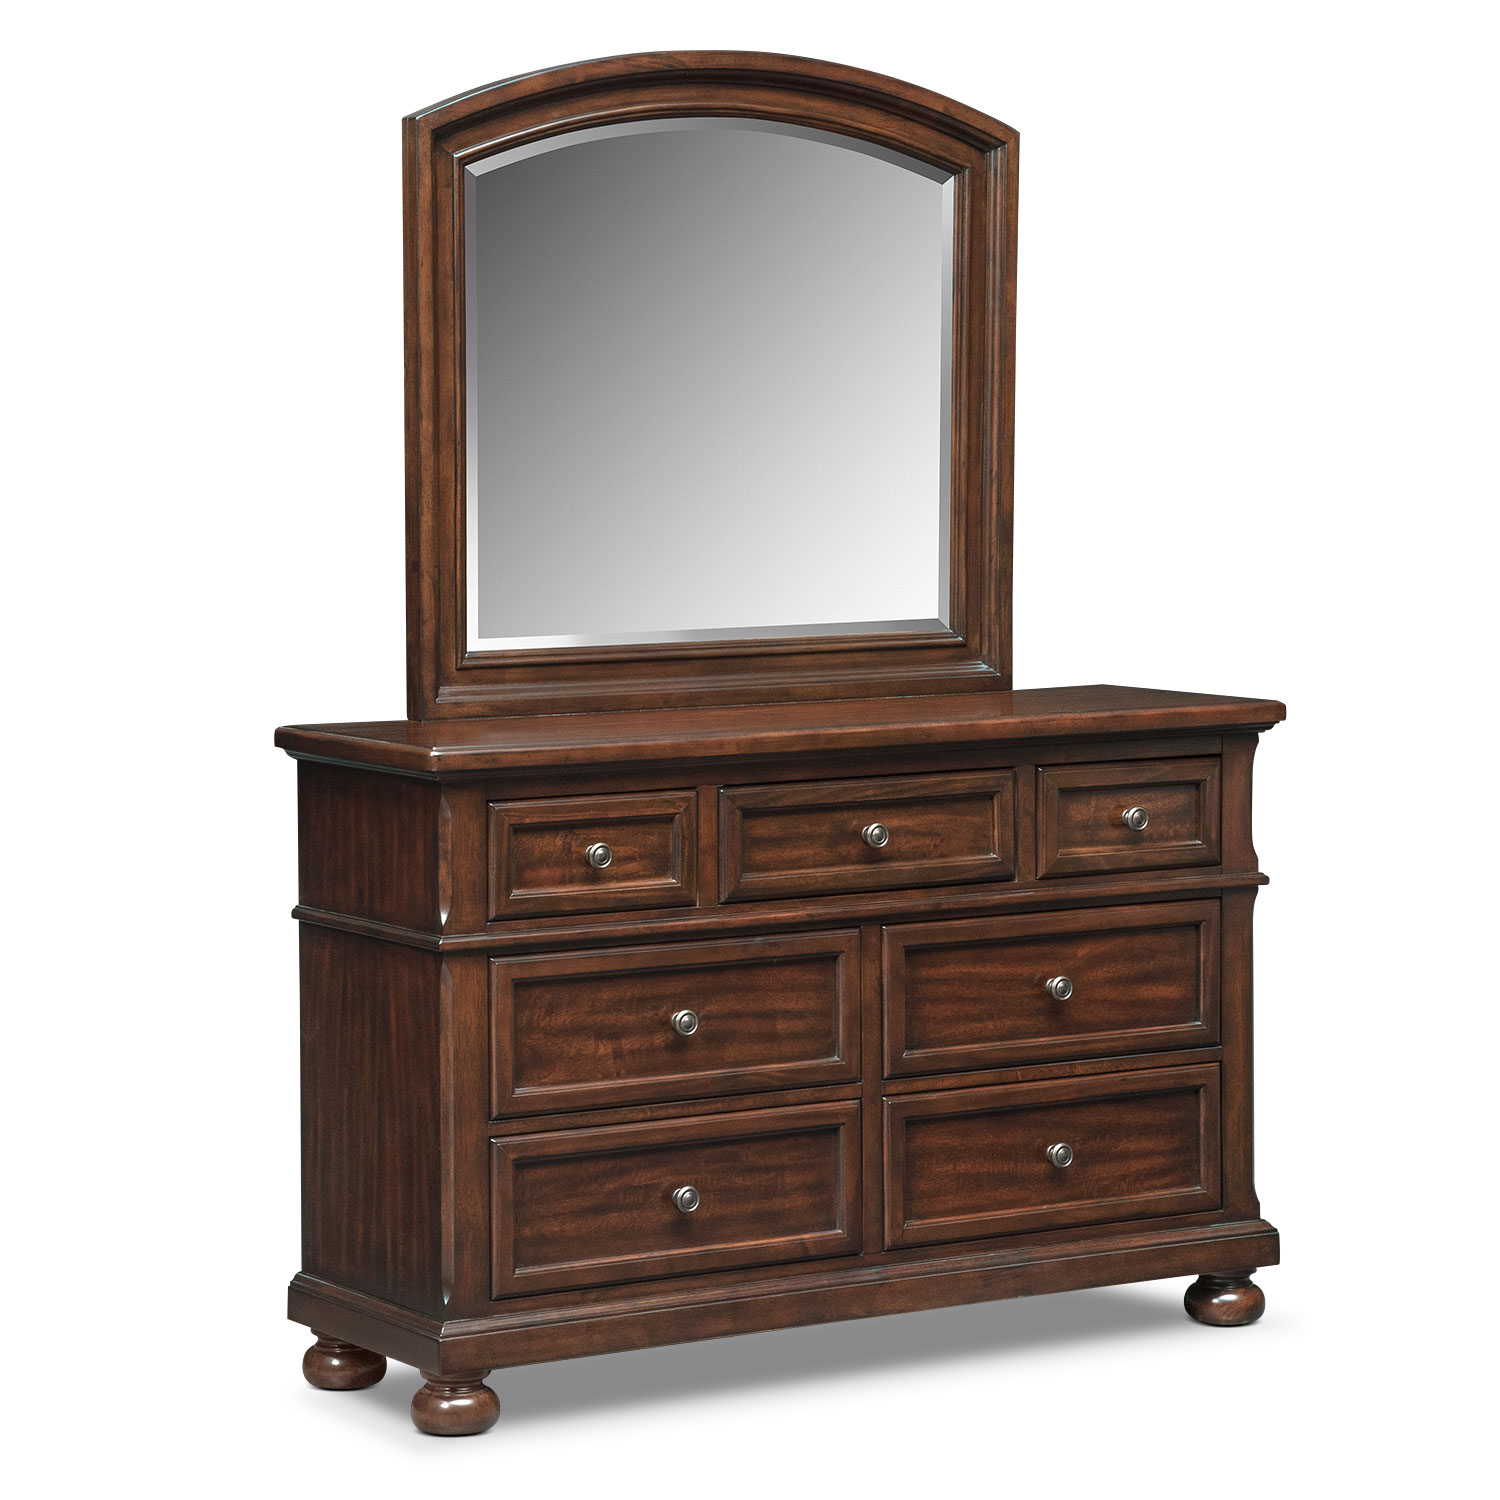 Bedroom Furniture - Hanover Youth Dresser and Mirror - Cherry